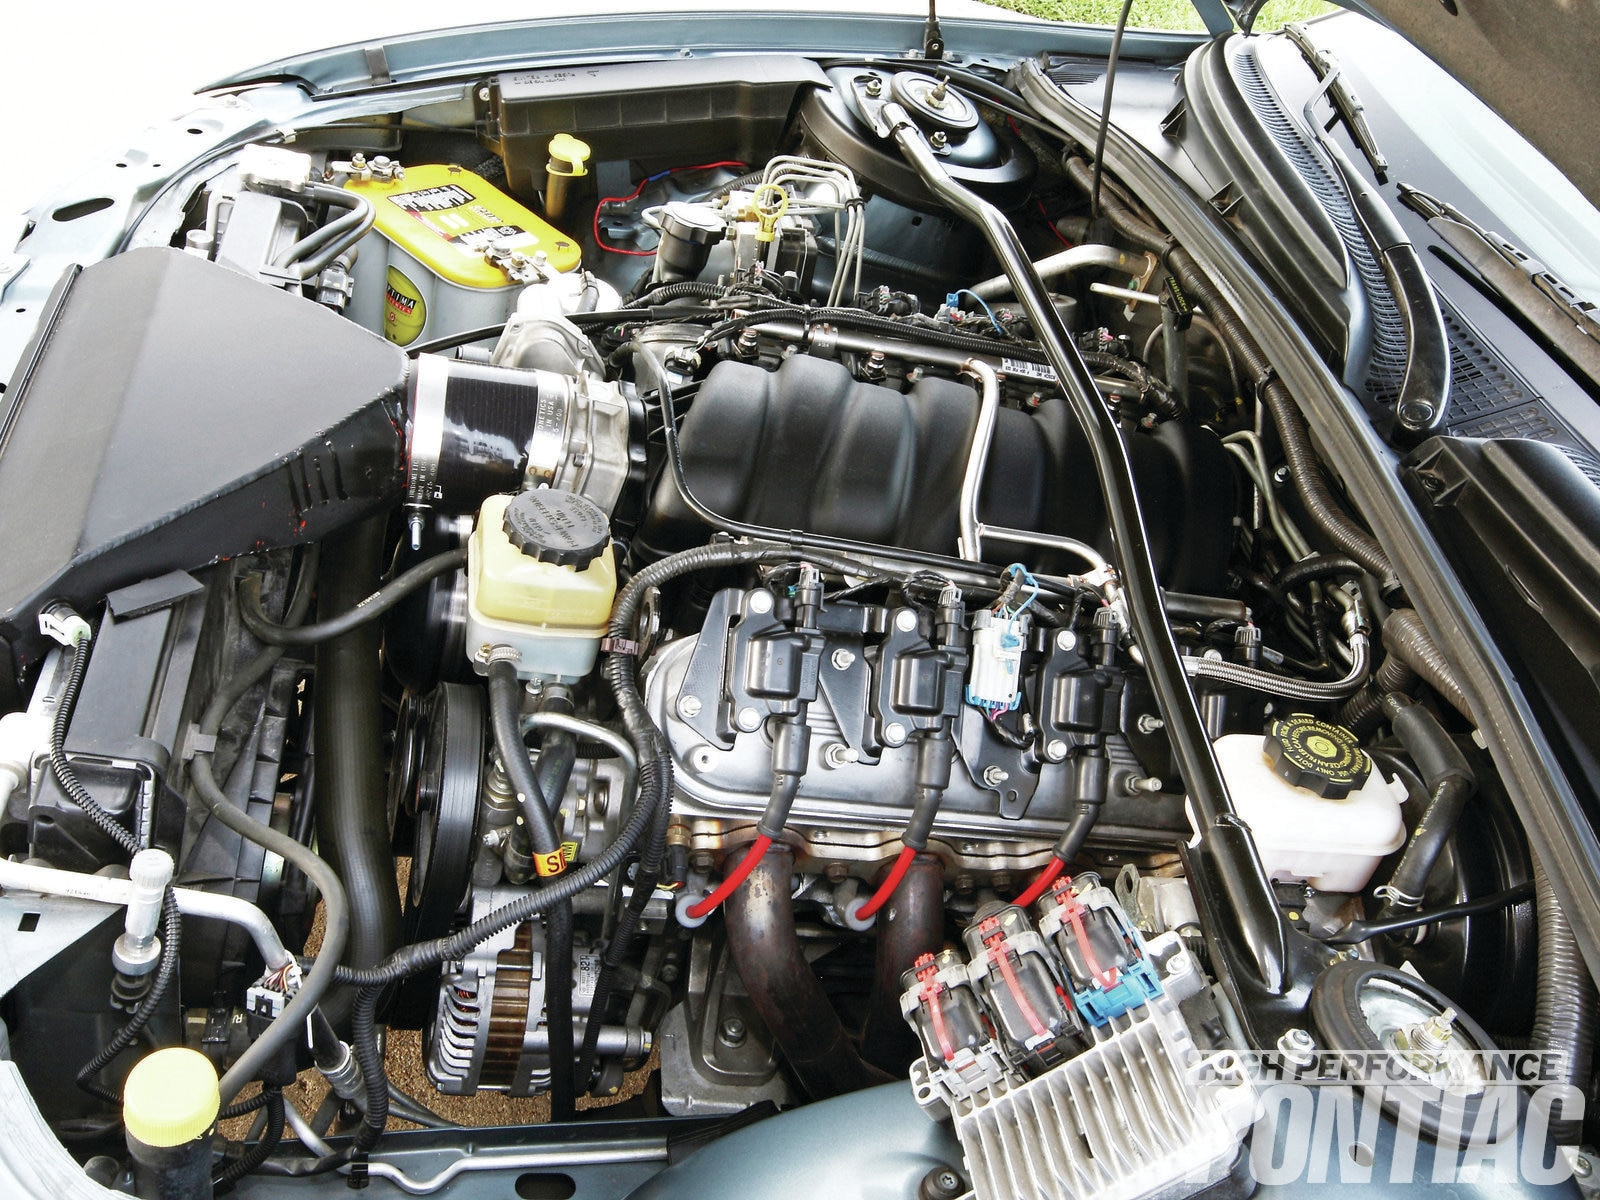 medium resolution of 2006 gto engine diagram data wiring diagram schema gto 6 0 2006 gto engine diagram